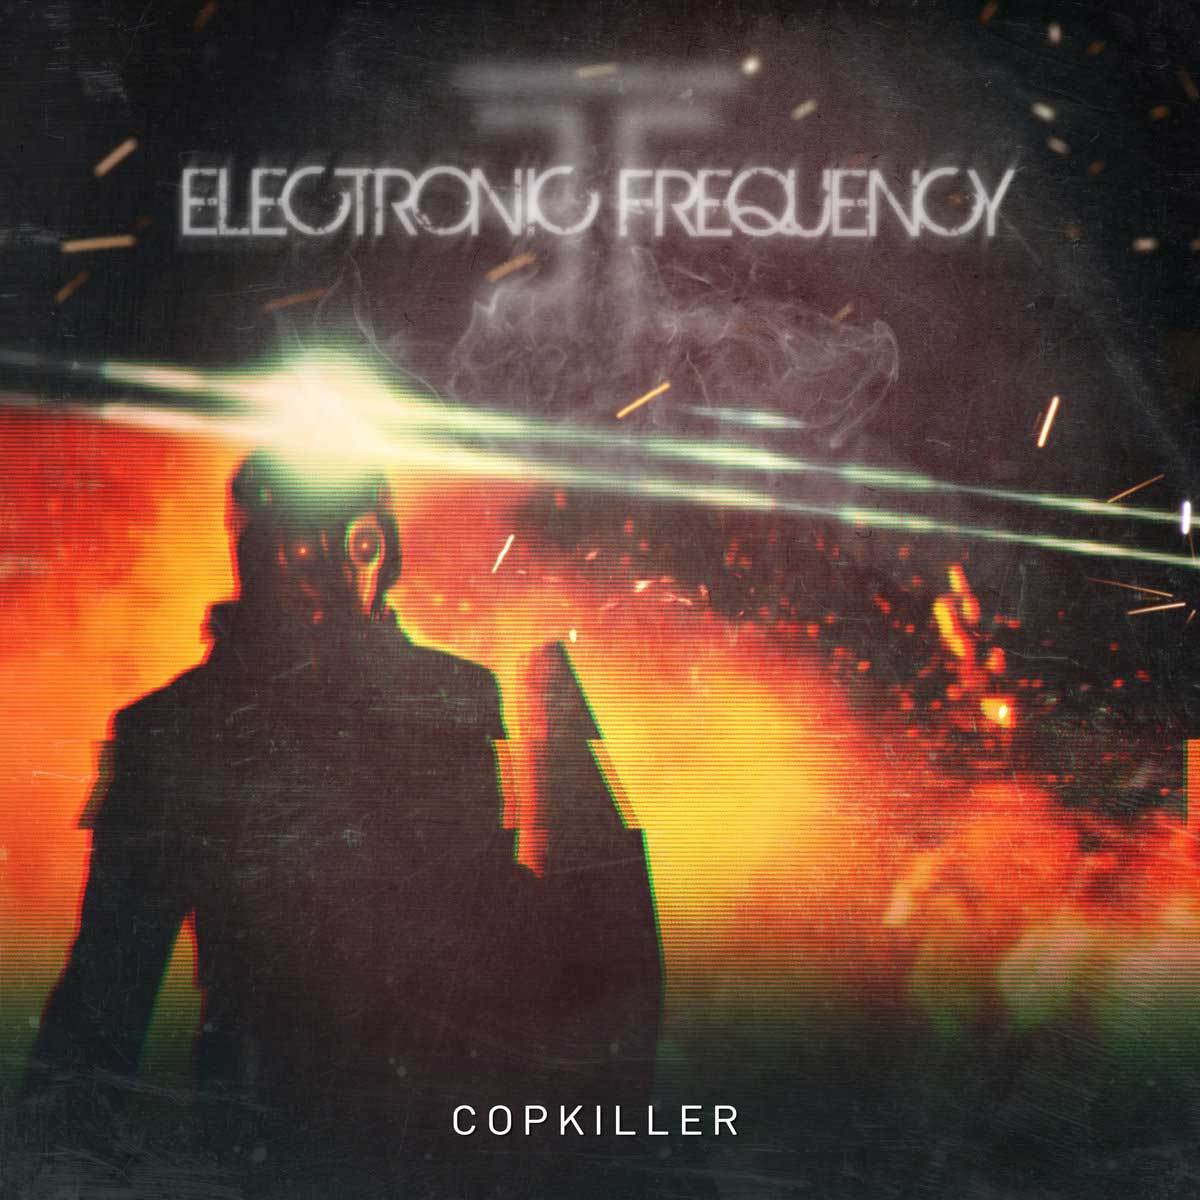 Electronic Frequency - Copkiller - Electronic Frequency - Copkiller